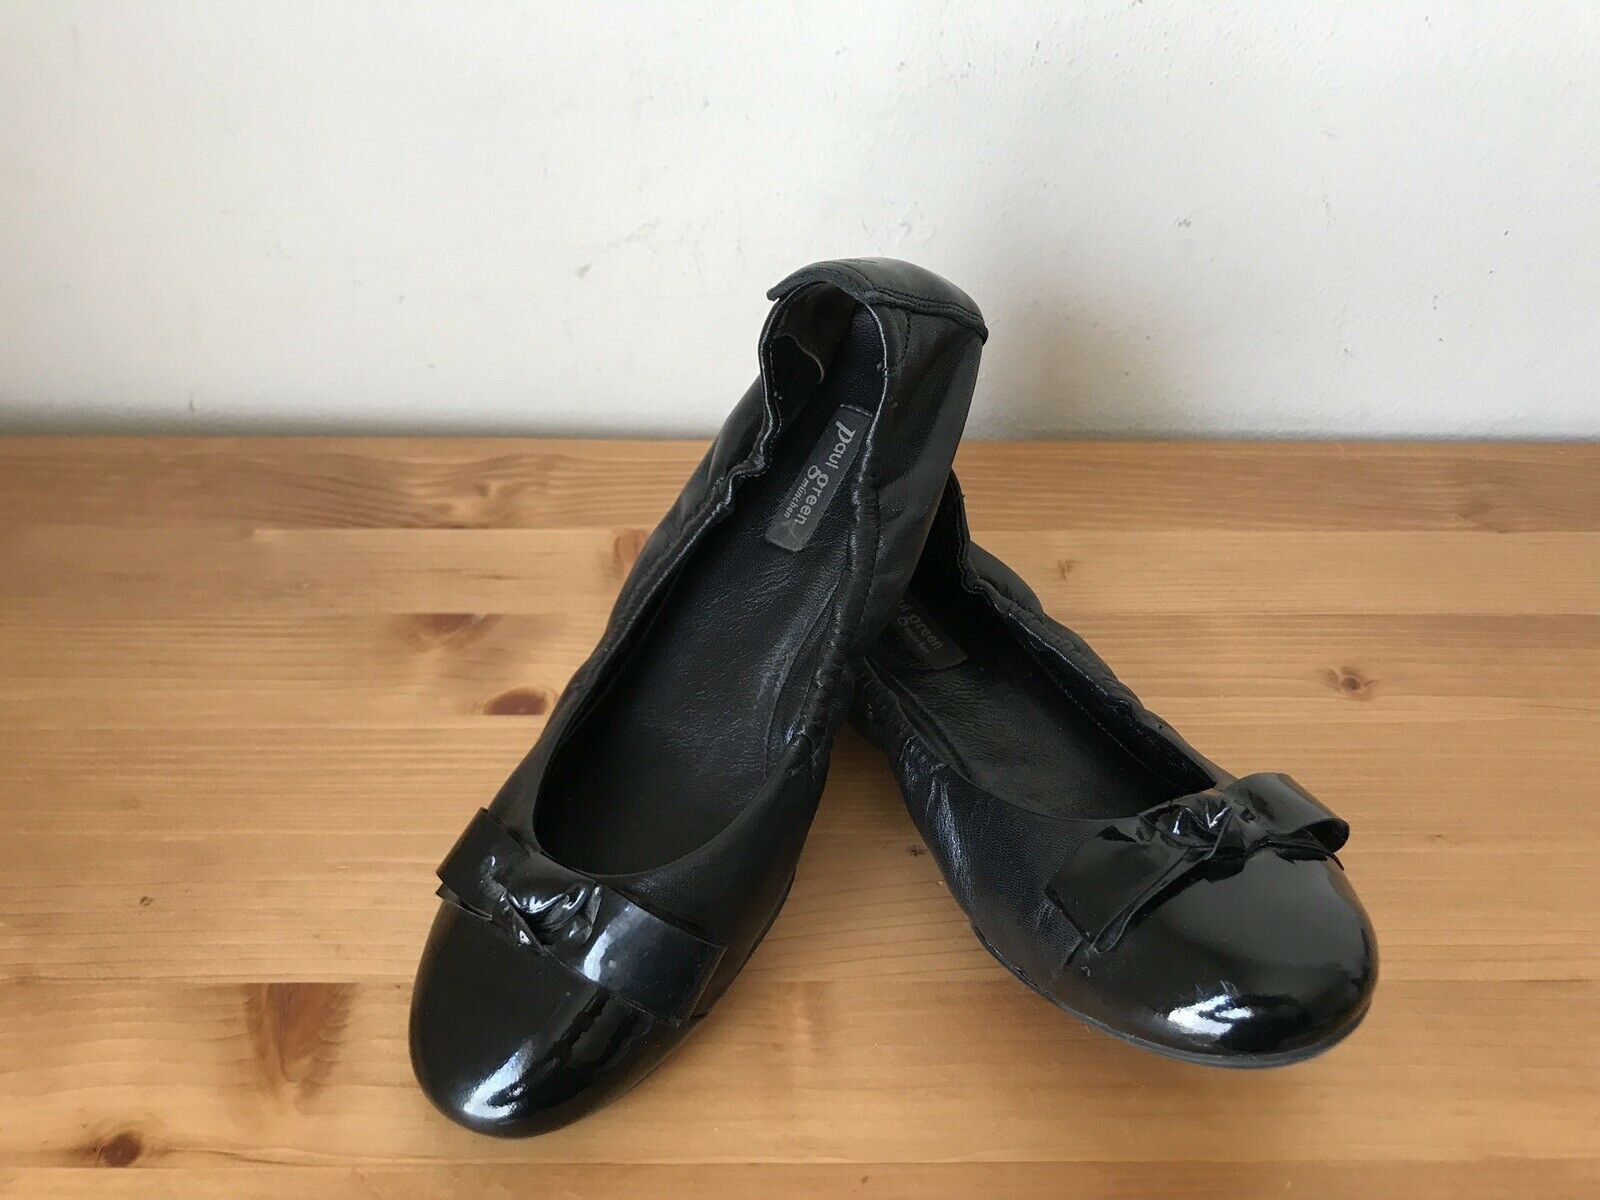 PAUL GREEN Black Patent Leather Cap Toe Ballet Flats Slip On Knot Bow UK4 US 6.5